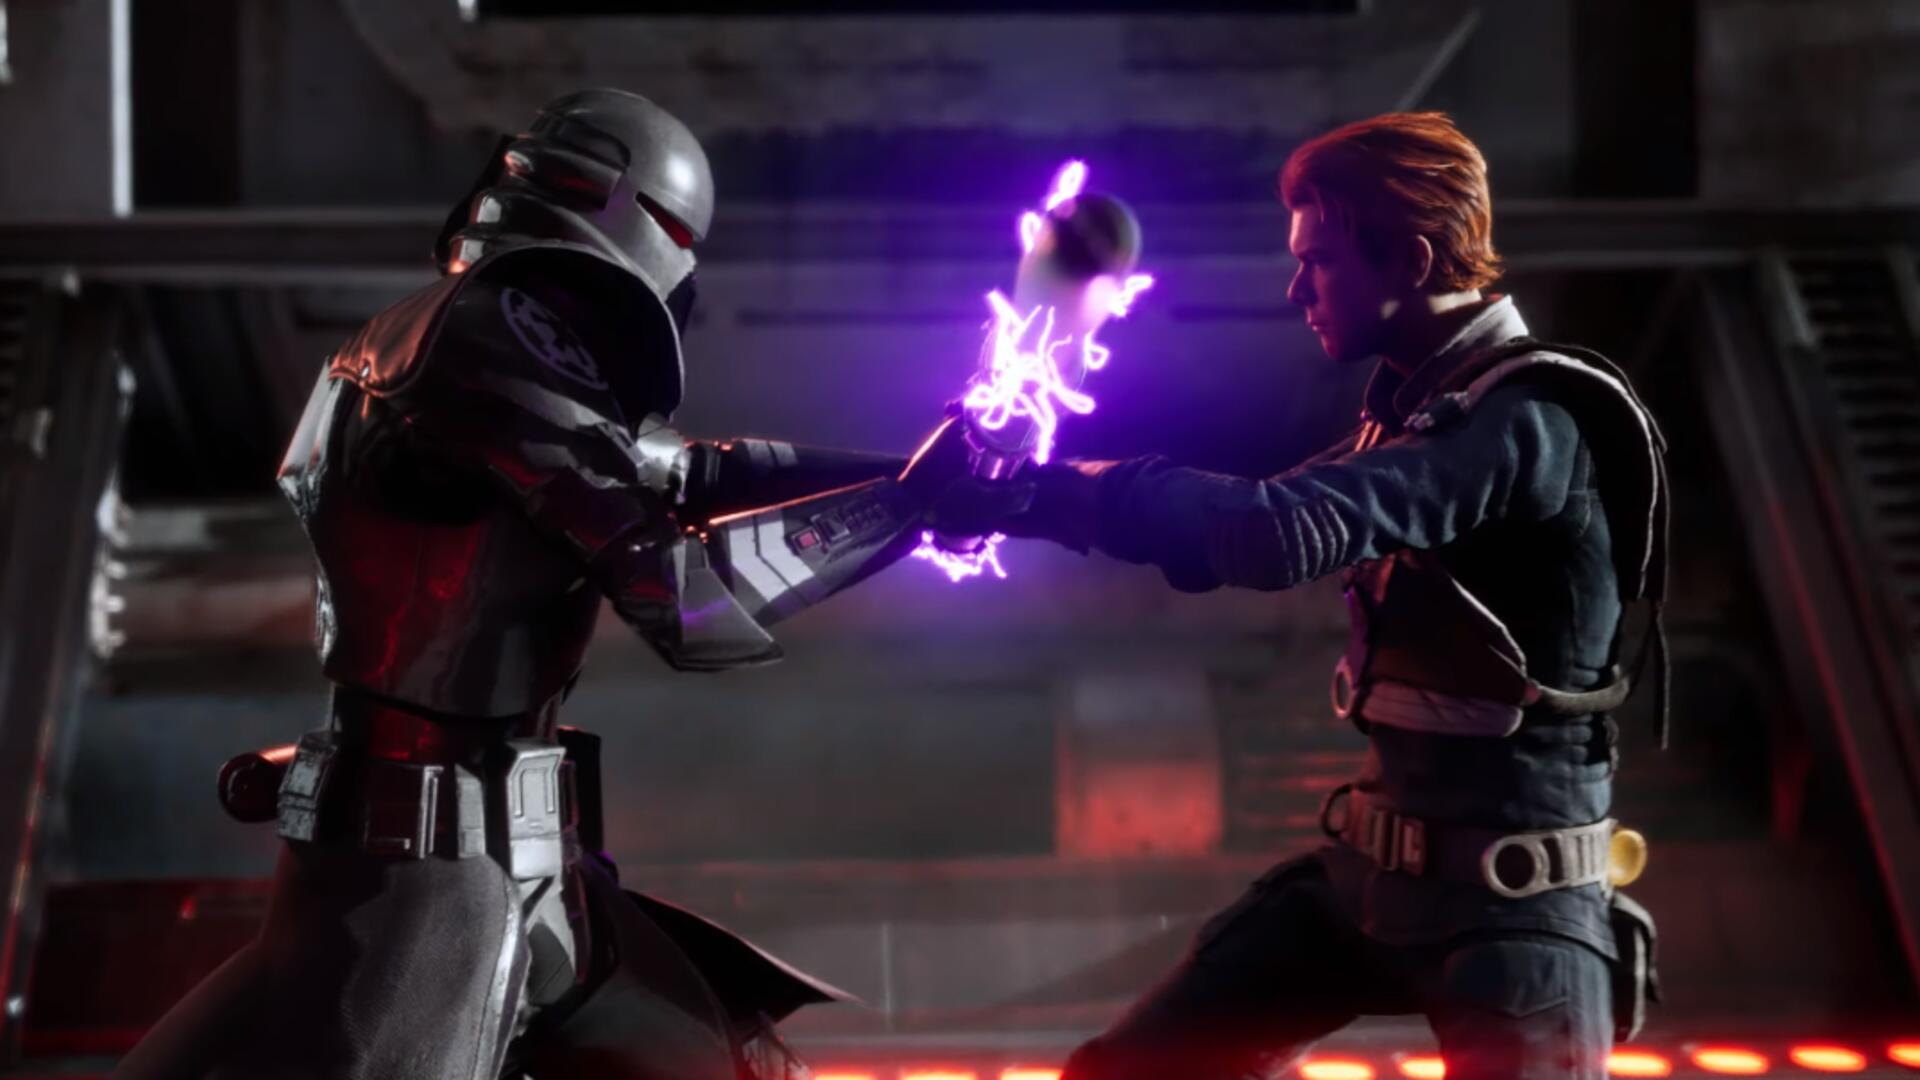 EA Play E3 2019 Live Stream Times, EA Play 2019 Date - Watch it Here